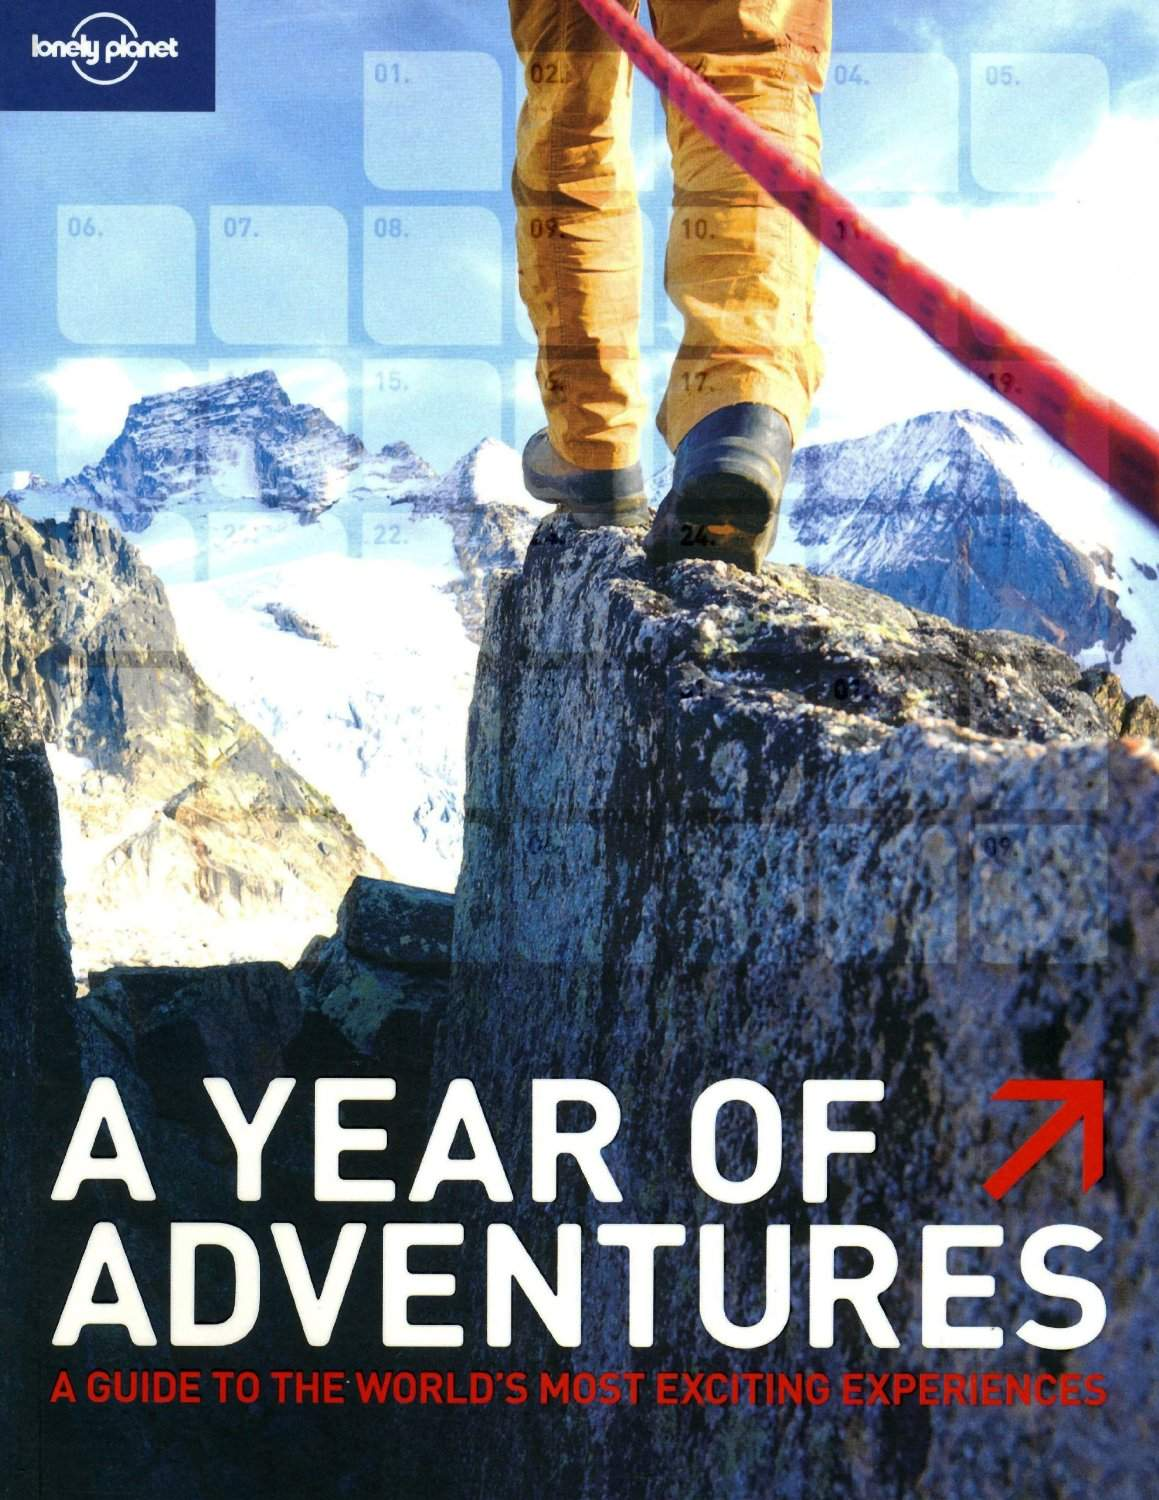 A Year of Adventures